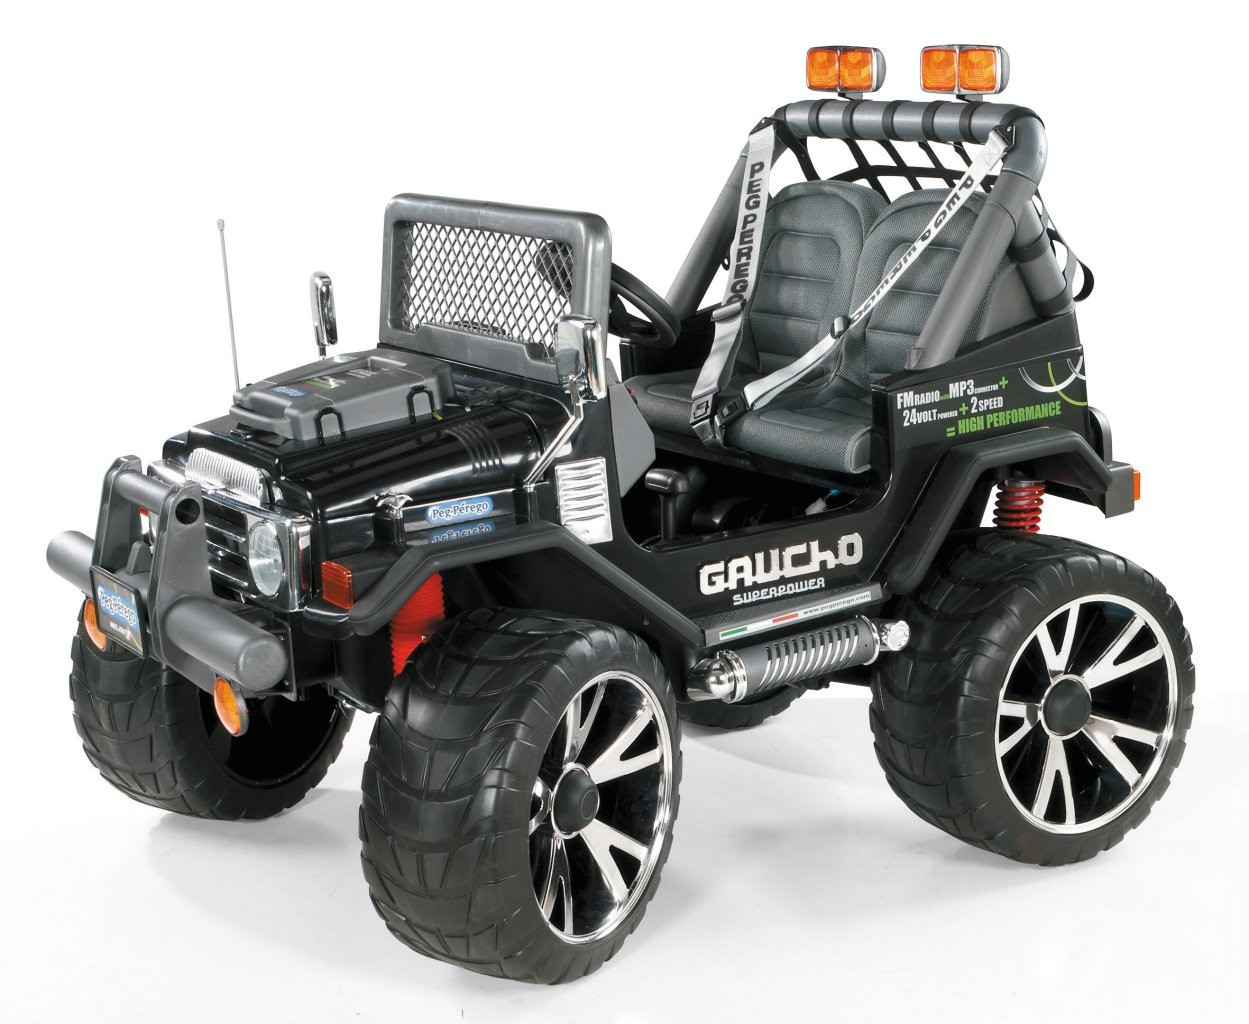 Электромобиль Peg-perego GAUCHO SUPERPOWER 24V